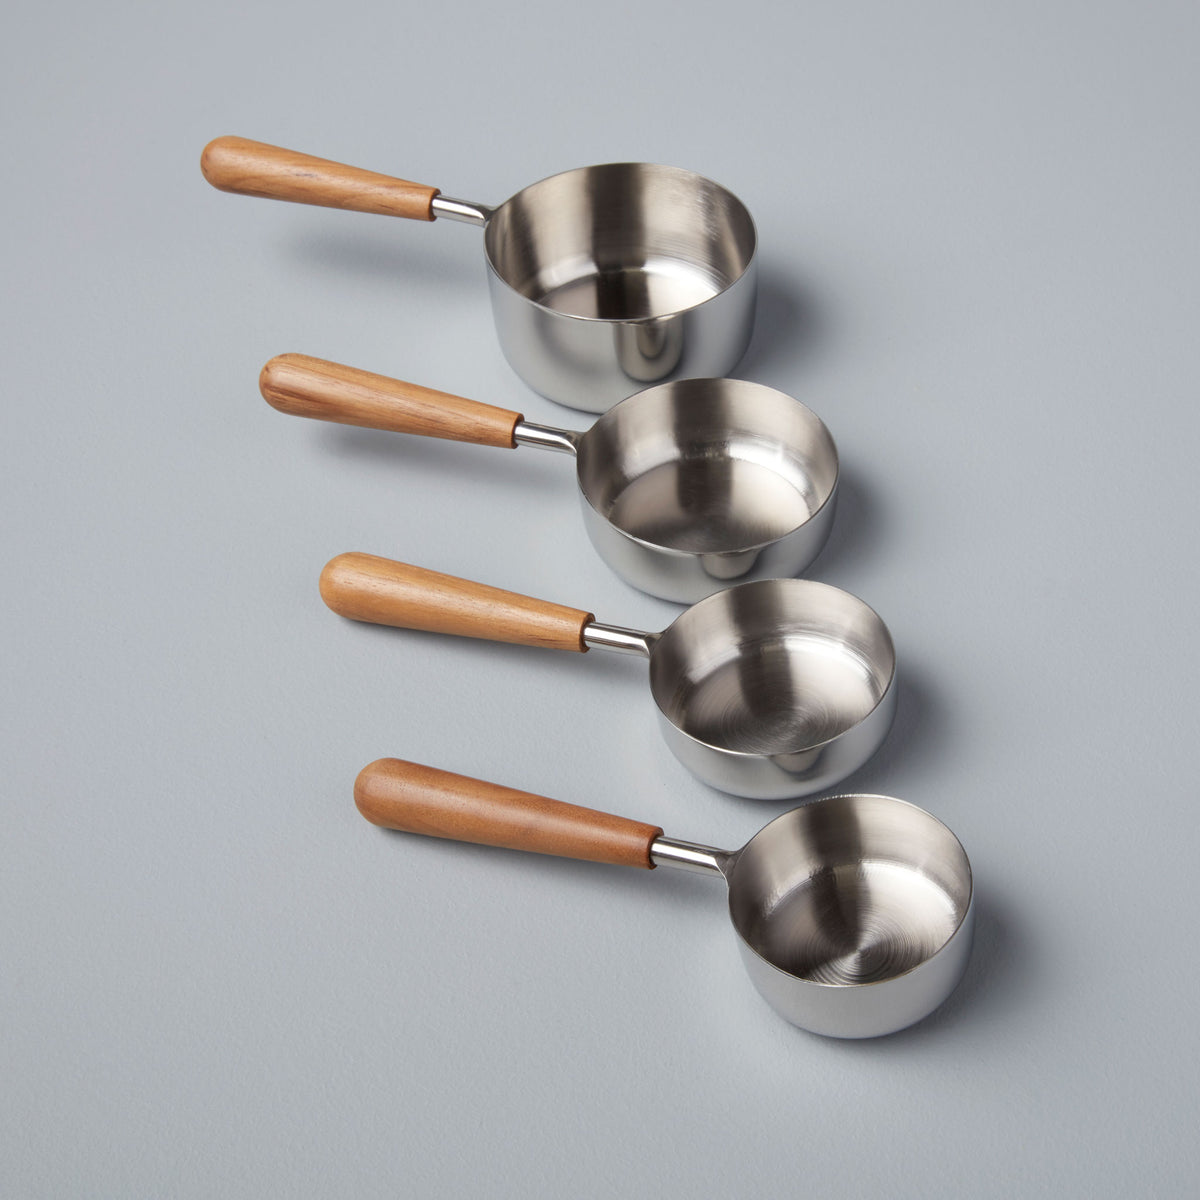 Teak & Stainless Measuring Cups, Set of 4